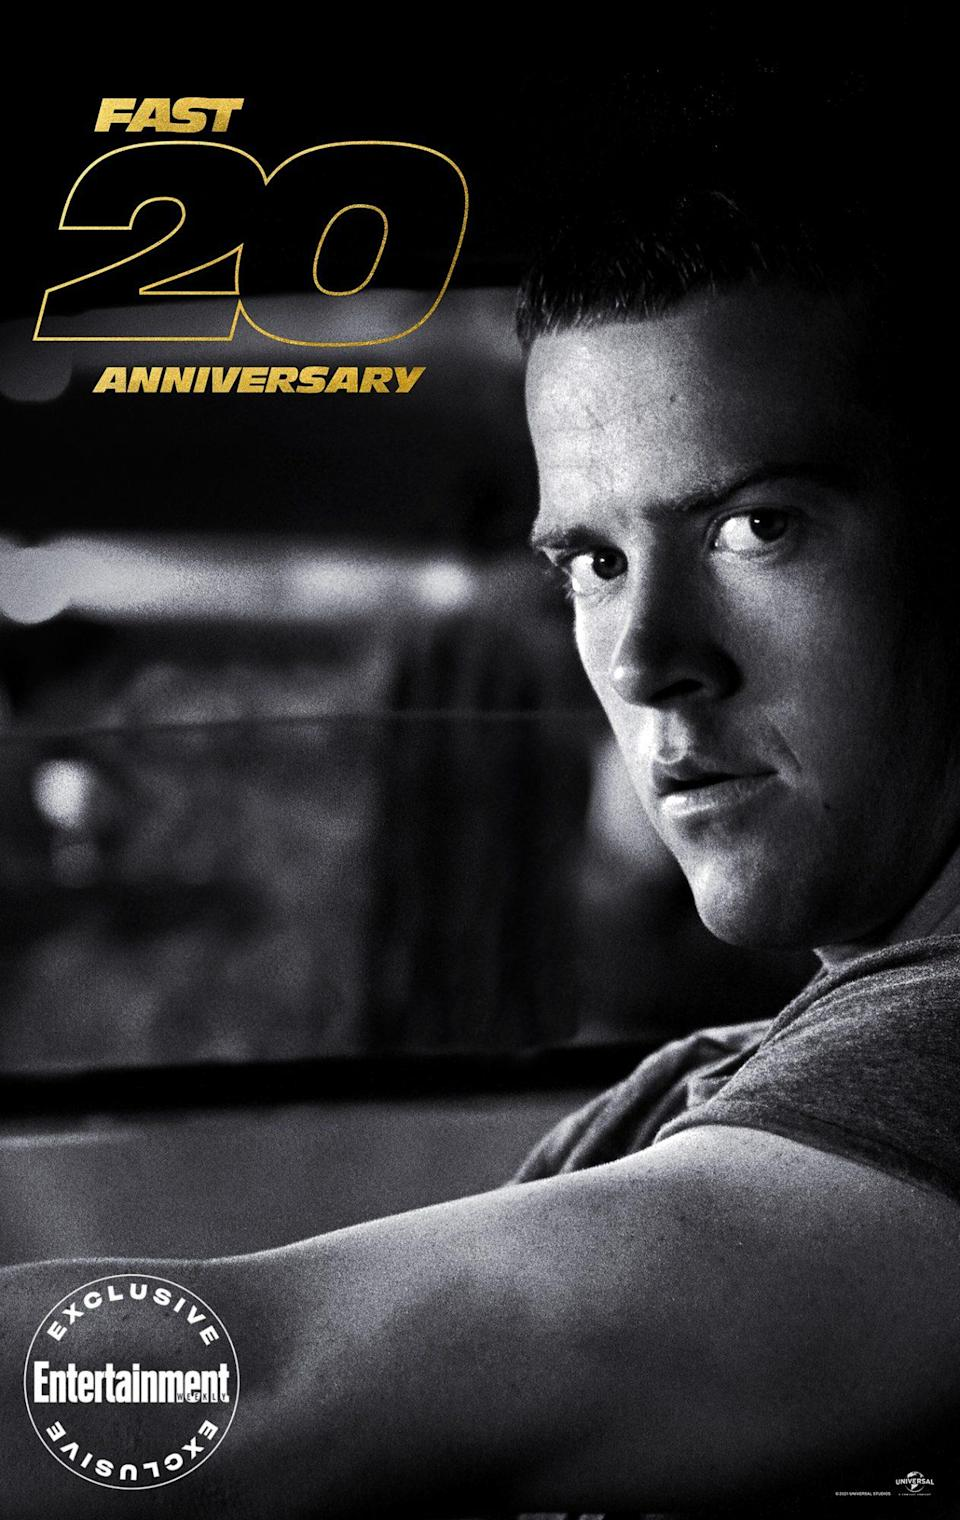 """<p><em>Fast</em> took an unexpected turn with 2006's <em>Tokyo Drift, </em>introducing an entirely new cast (with the exception of Diesel's cameo). Front and center was <a href=""""https://ew.com/tag/lucas-black/"""" rel=""""nofollow noopener"""" target=""""_blank"""" data-ylk=""""slk:Lucas Black"""" class=""""link rapid-noclick-resp"""">Lucas Black</a> as Sean Boswell, a troubled teen and talented driver who is sent to live with his father in Tokyo. """"Just being a part of <em>Fast & Furious</em> is incredible and a huge success for me,"""" <a href=""""https://ew.com/ew-binge-podcast/fast-saga-lucas-black-tokyo-drift/"""" rel=""""nofollow noopener"""" target=""""_blank"""" data-ylk=""""slk:said Black on EW's BINGE: The Fast Saga"""" class=""""link rapid-noclick-resp"""">said Black on <em>EW's BINGE: The Fast Saga</em></a>. """"It was a blessing to see that it was one of those films that stood out from the franchise. That's what's so unique about <em>Tokyo Drift:</em> It kind of has its own following. I know the saga has changed throughout the years, and that's been a good thing. But <em>Tokyo Drift</em> stands out different, and I'm proud of that.""""</p>"""